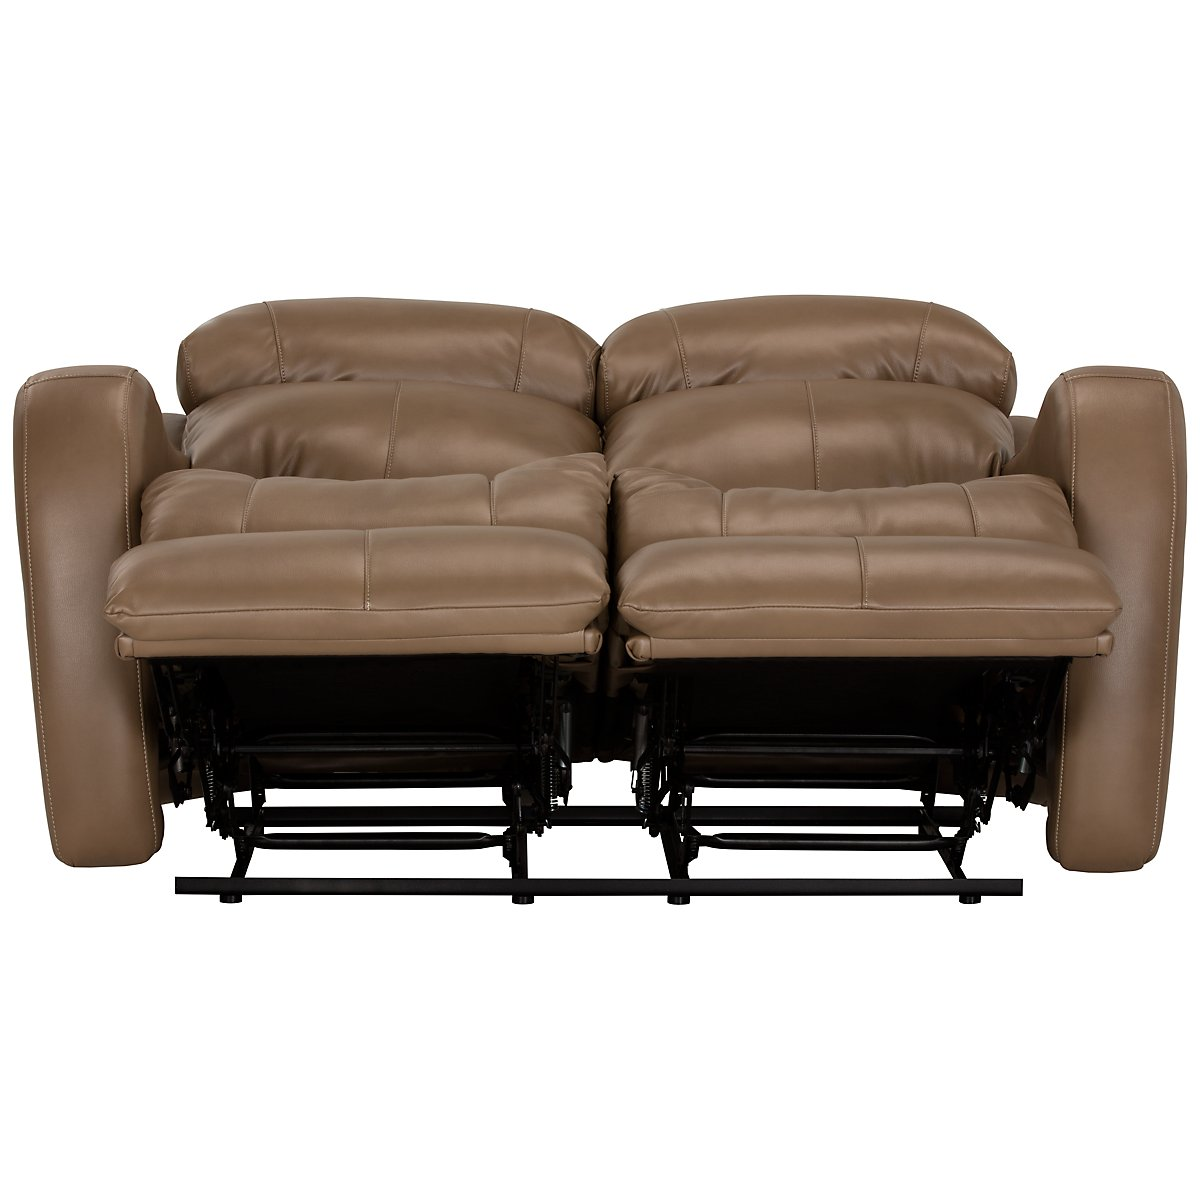 rcwilley legacy loveseat room view reclining living jsp microfiber sofa furniture groups power chocolate brown